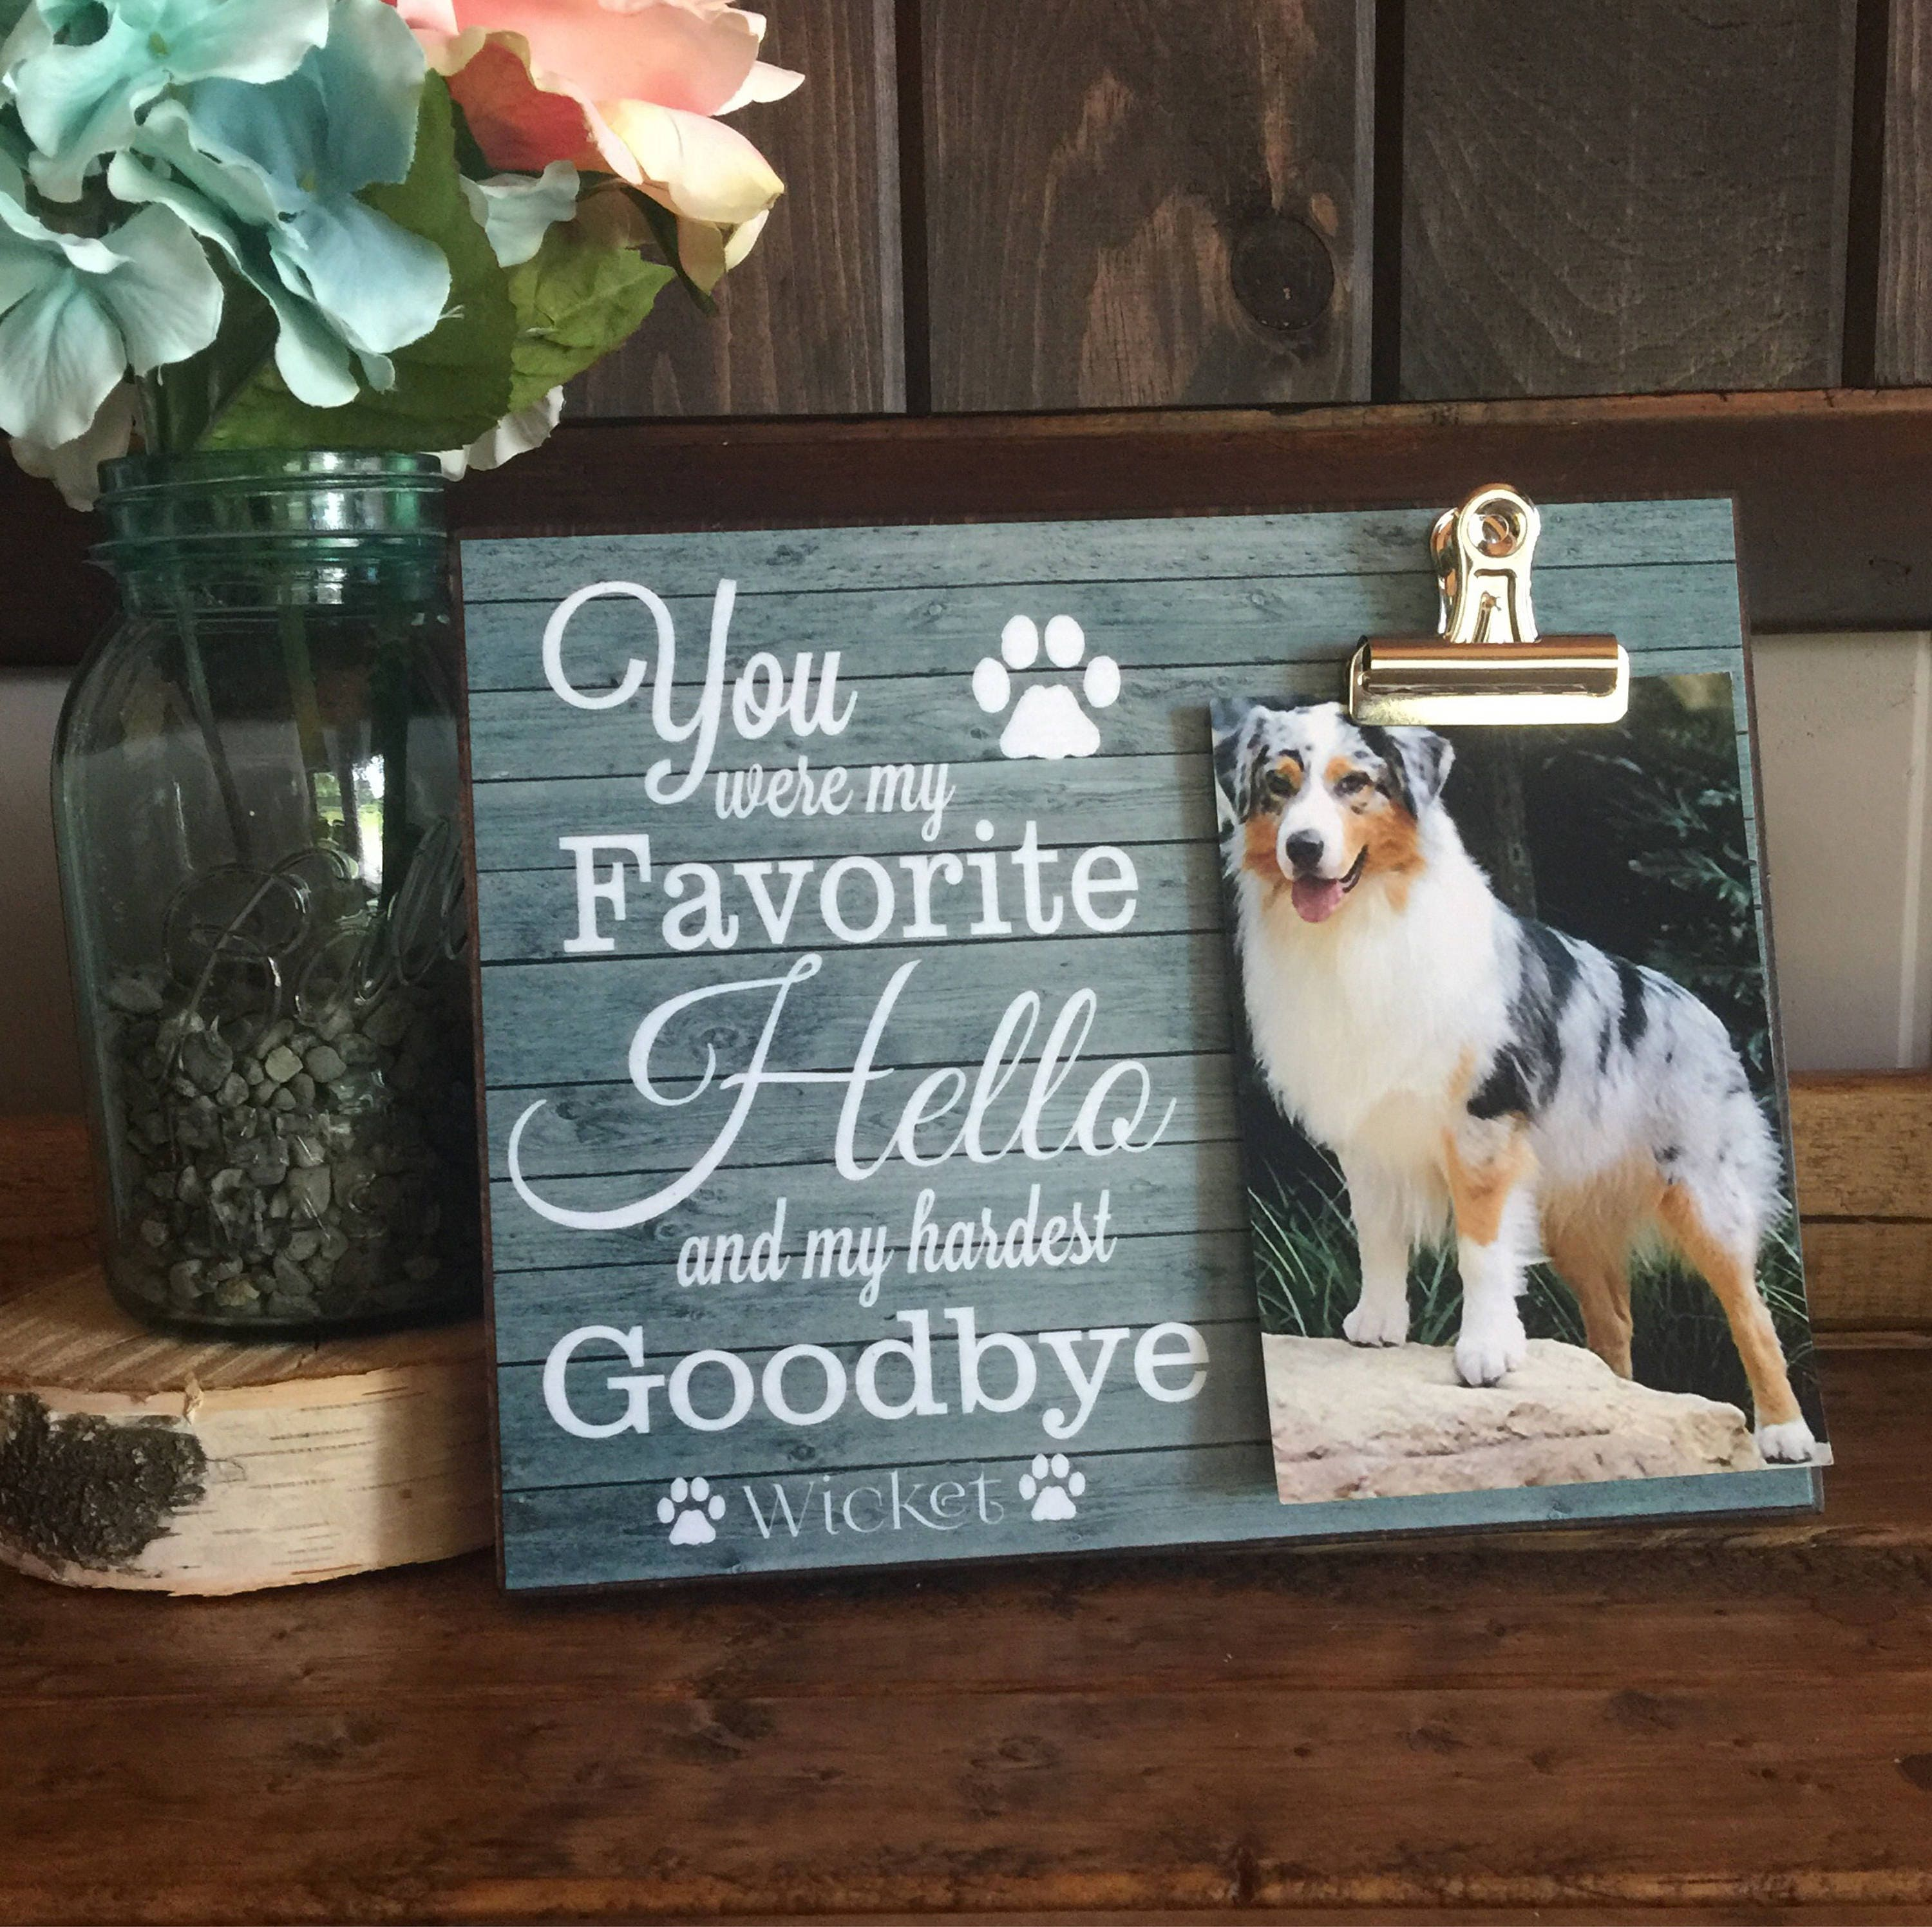 Pet picture frame you were my favorite hello and my hardest pet picture frame you were my favorite hello and my hardest goodbye dog memorial frame thinking of you gift jeuxipadfo Images